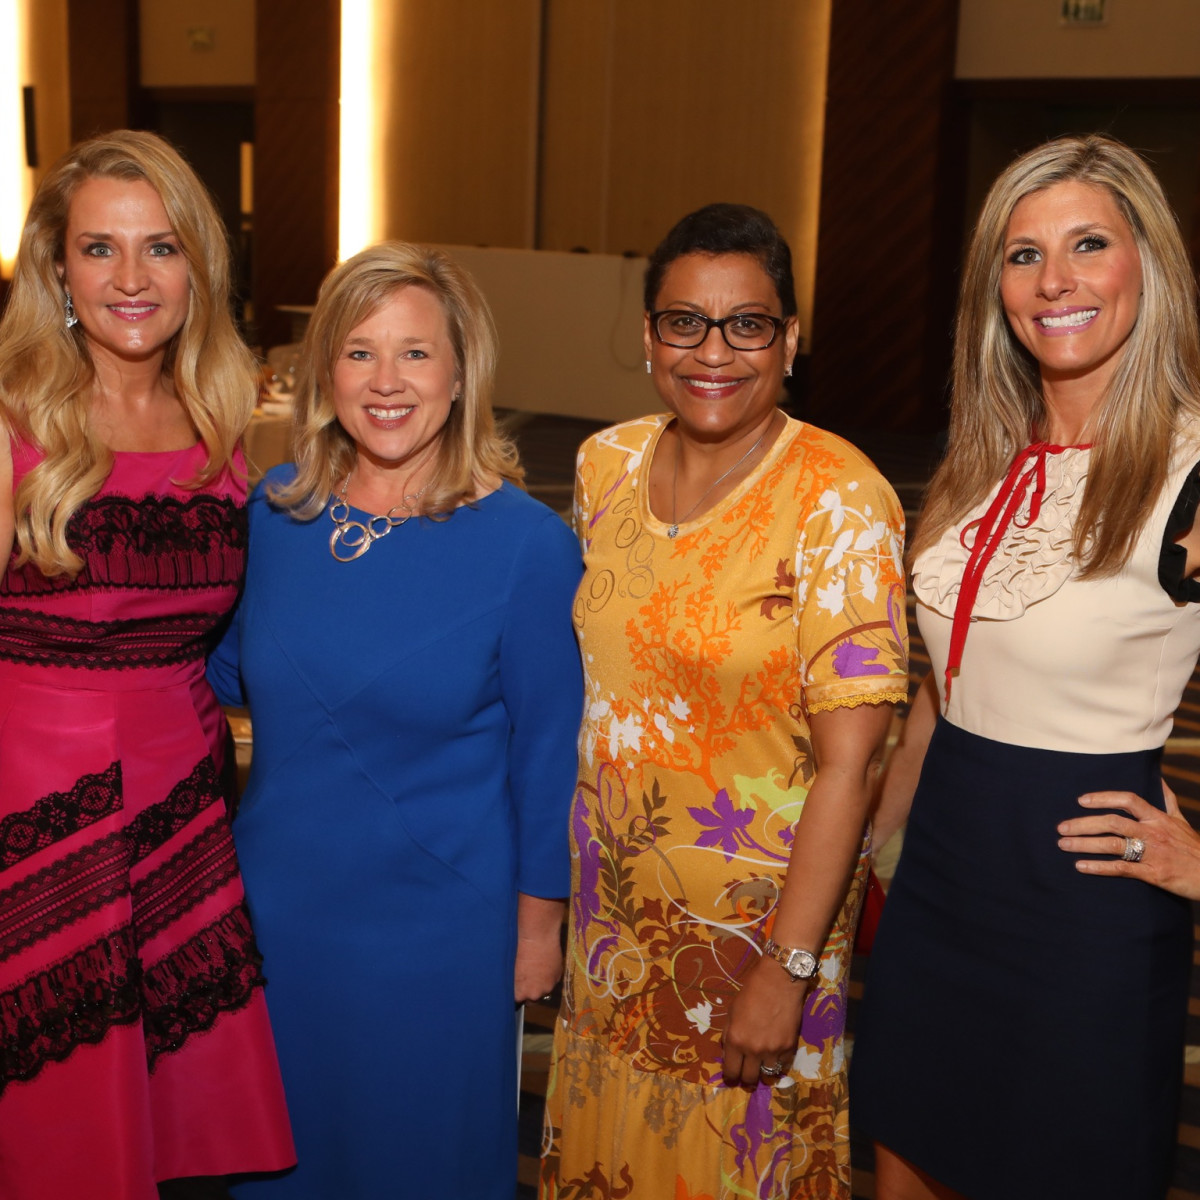 Mary D'Andrea, Jennifer Gammel, Stacey Stewart, Gina Bhatia at Best Dressed Luncheon 2017